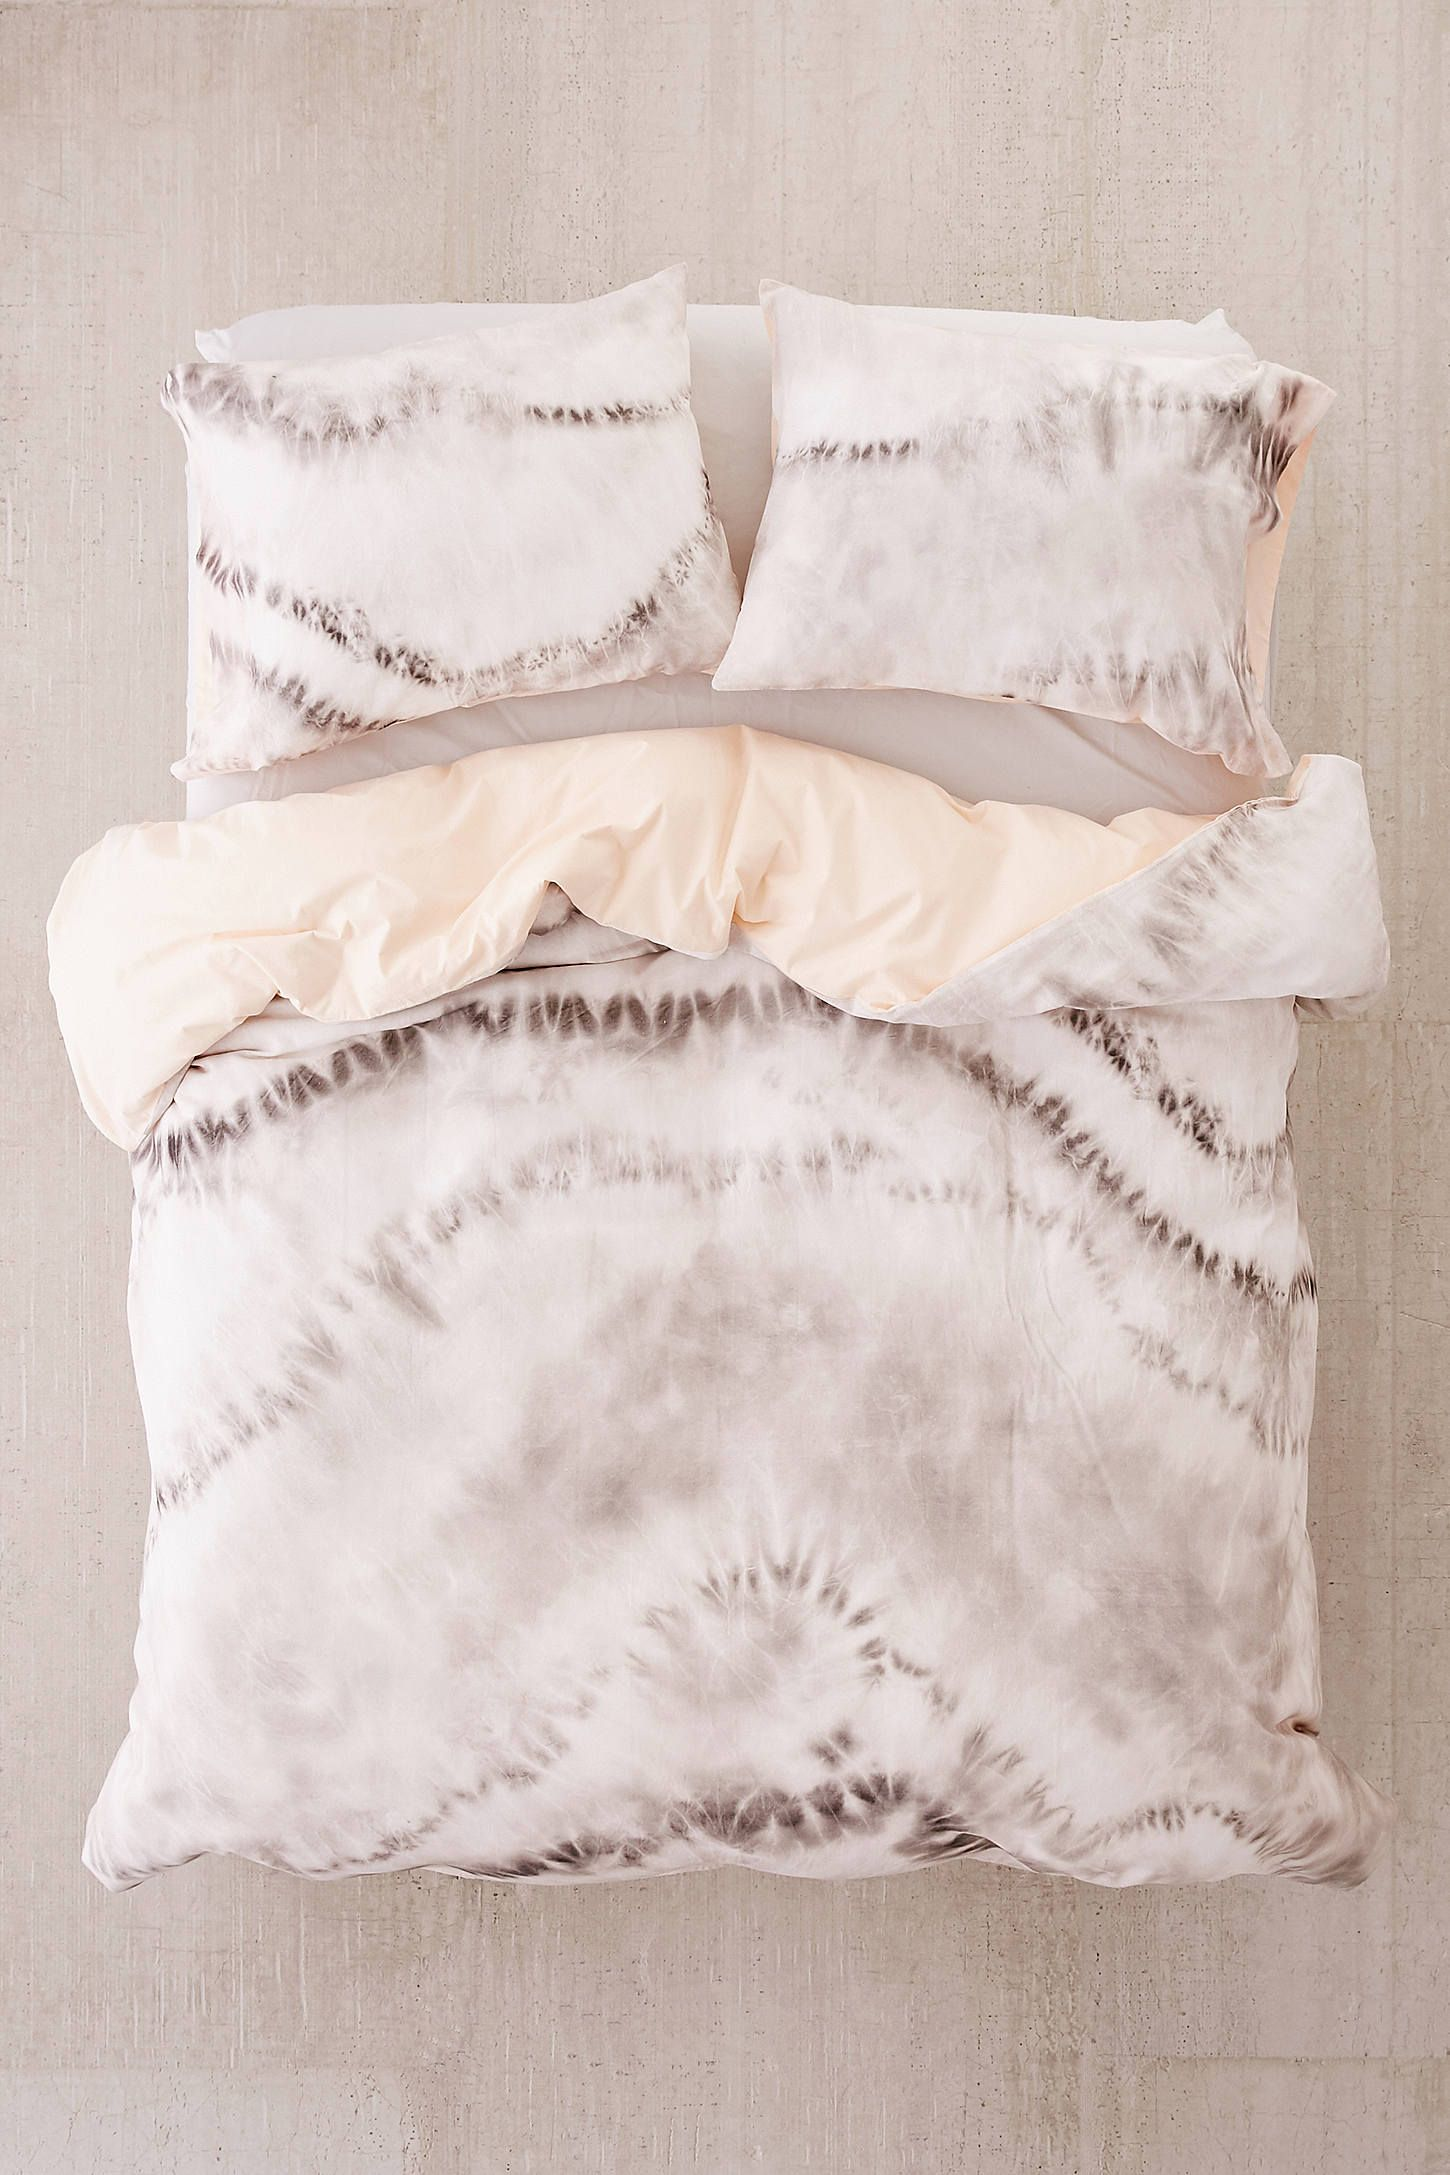 Shop Neutral Tie Dye Reversible Duvet Cover At Urban Outfitters